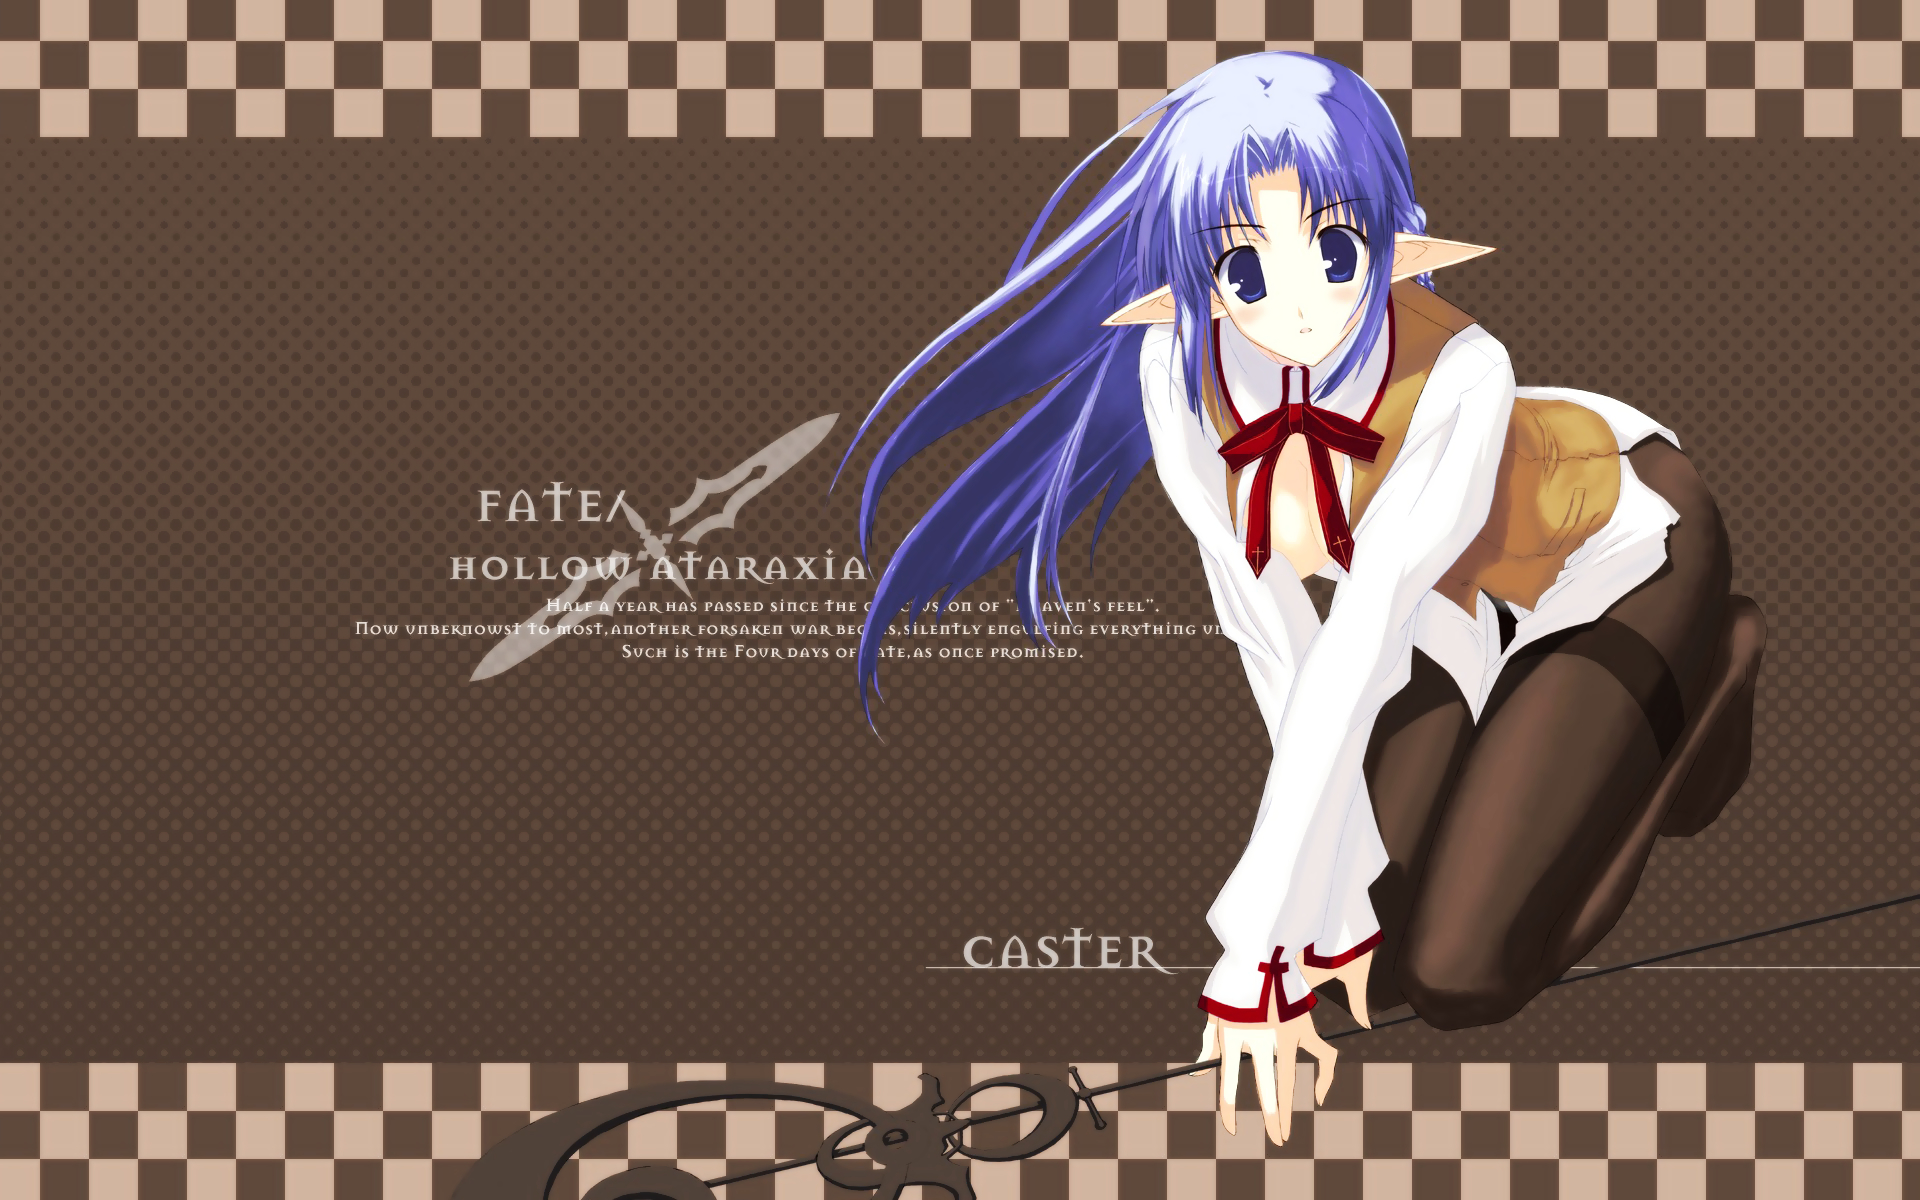 fate Stay night caster